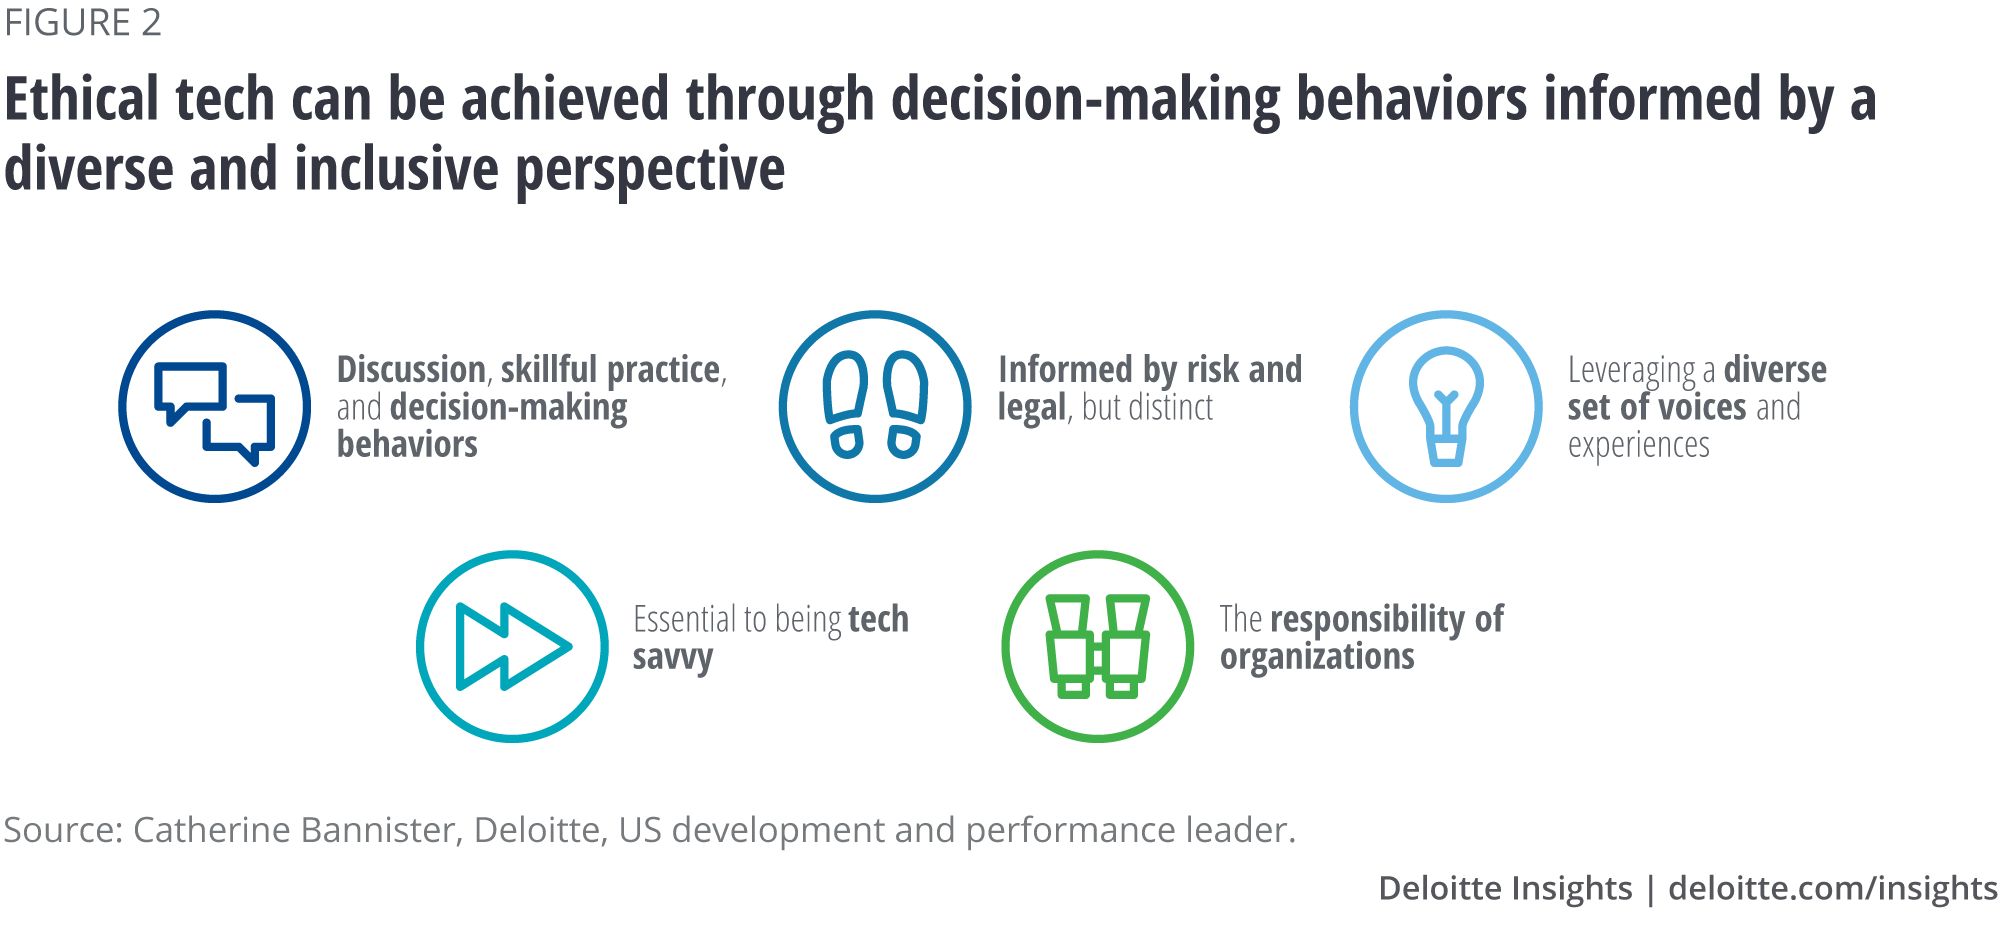 Ethical tech can be achieved through decision-making behaviors informed by a diverse and inclusive perspective